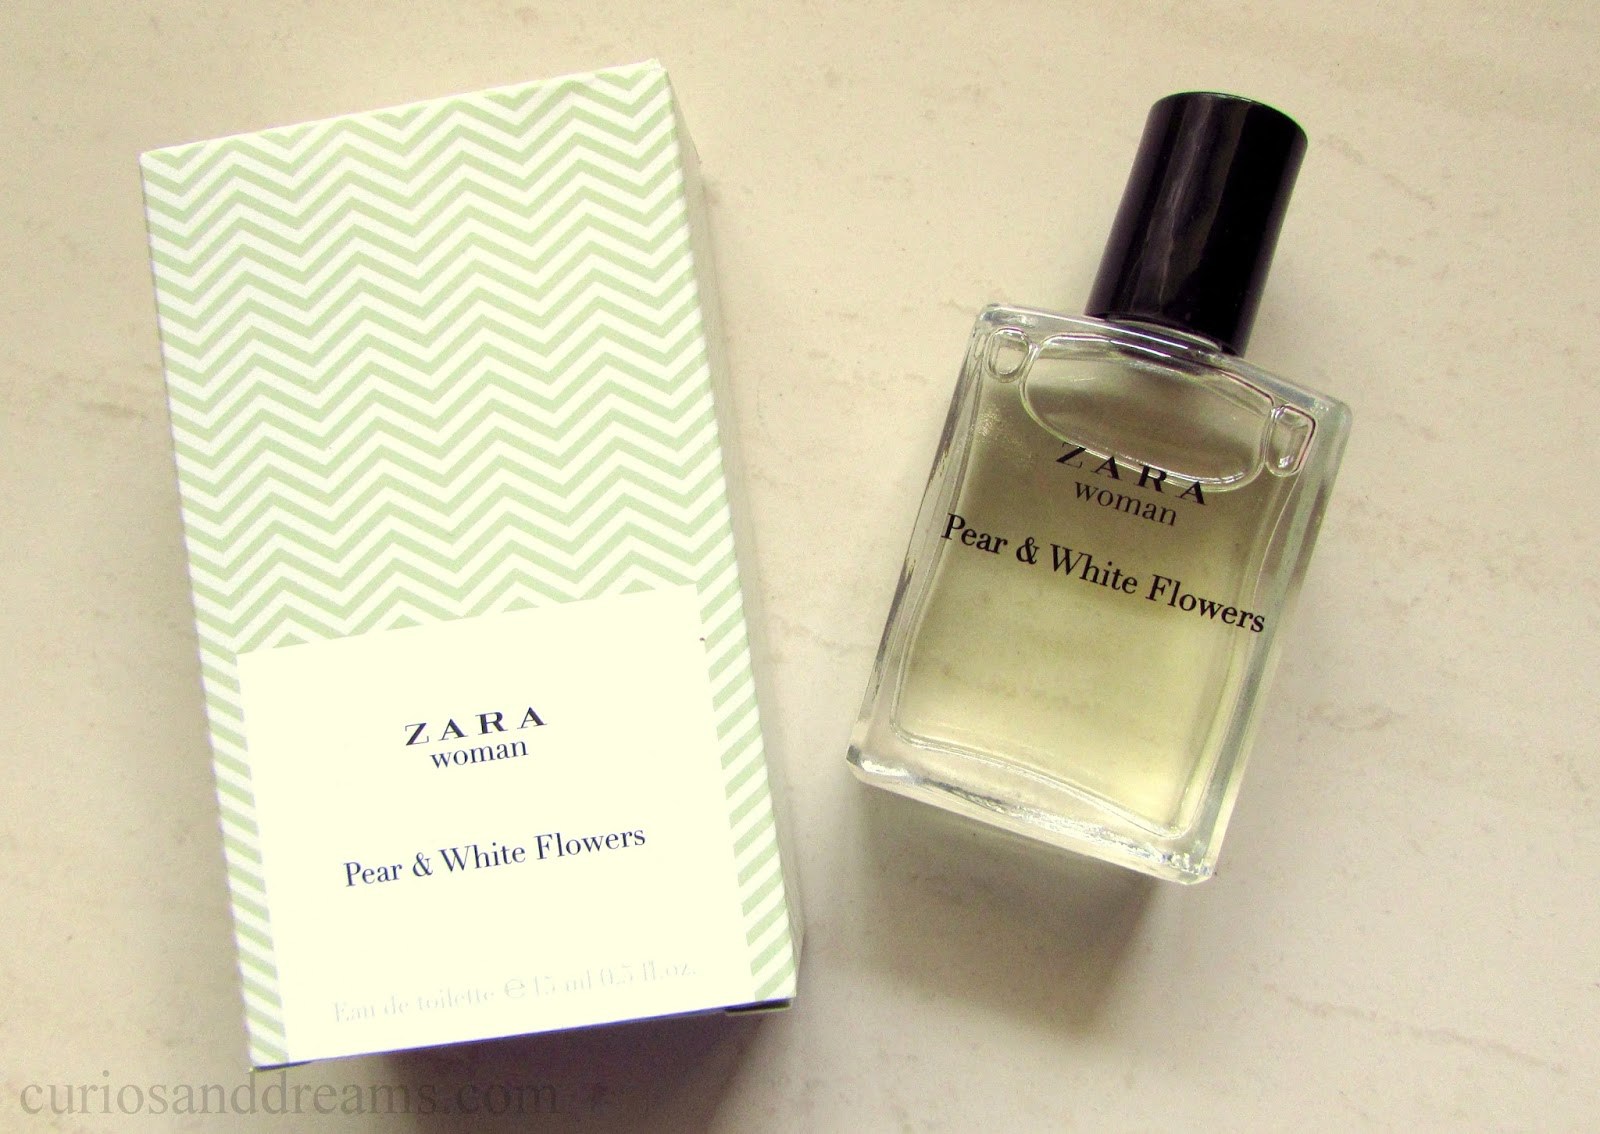 Curios and dreams makeup and beauty product reviews zara woman it super ideal to carry in your handbag and i had been on the lookout for a perfume i could carry around it seemed like this was made for me mightylinksfo